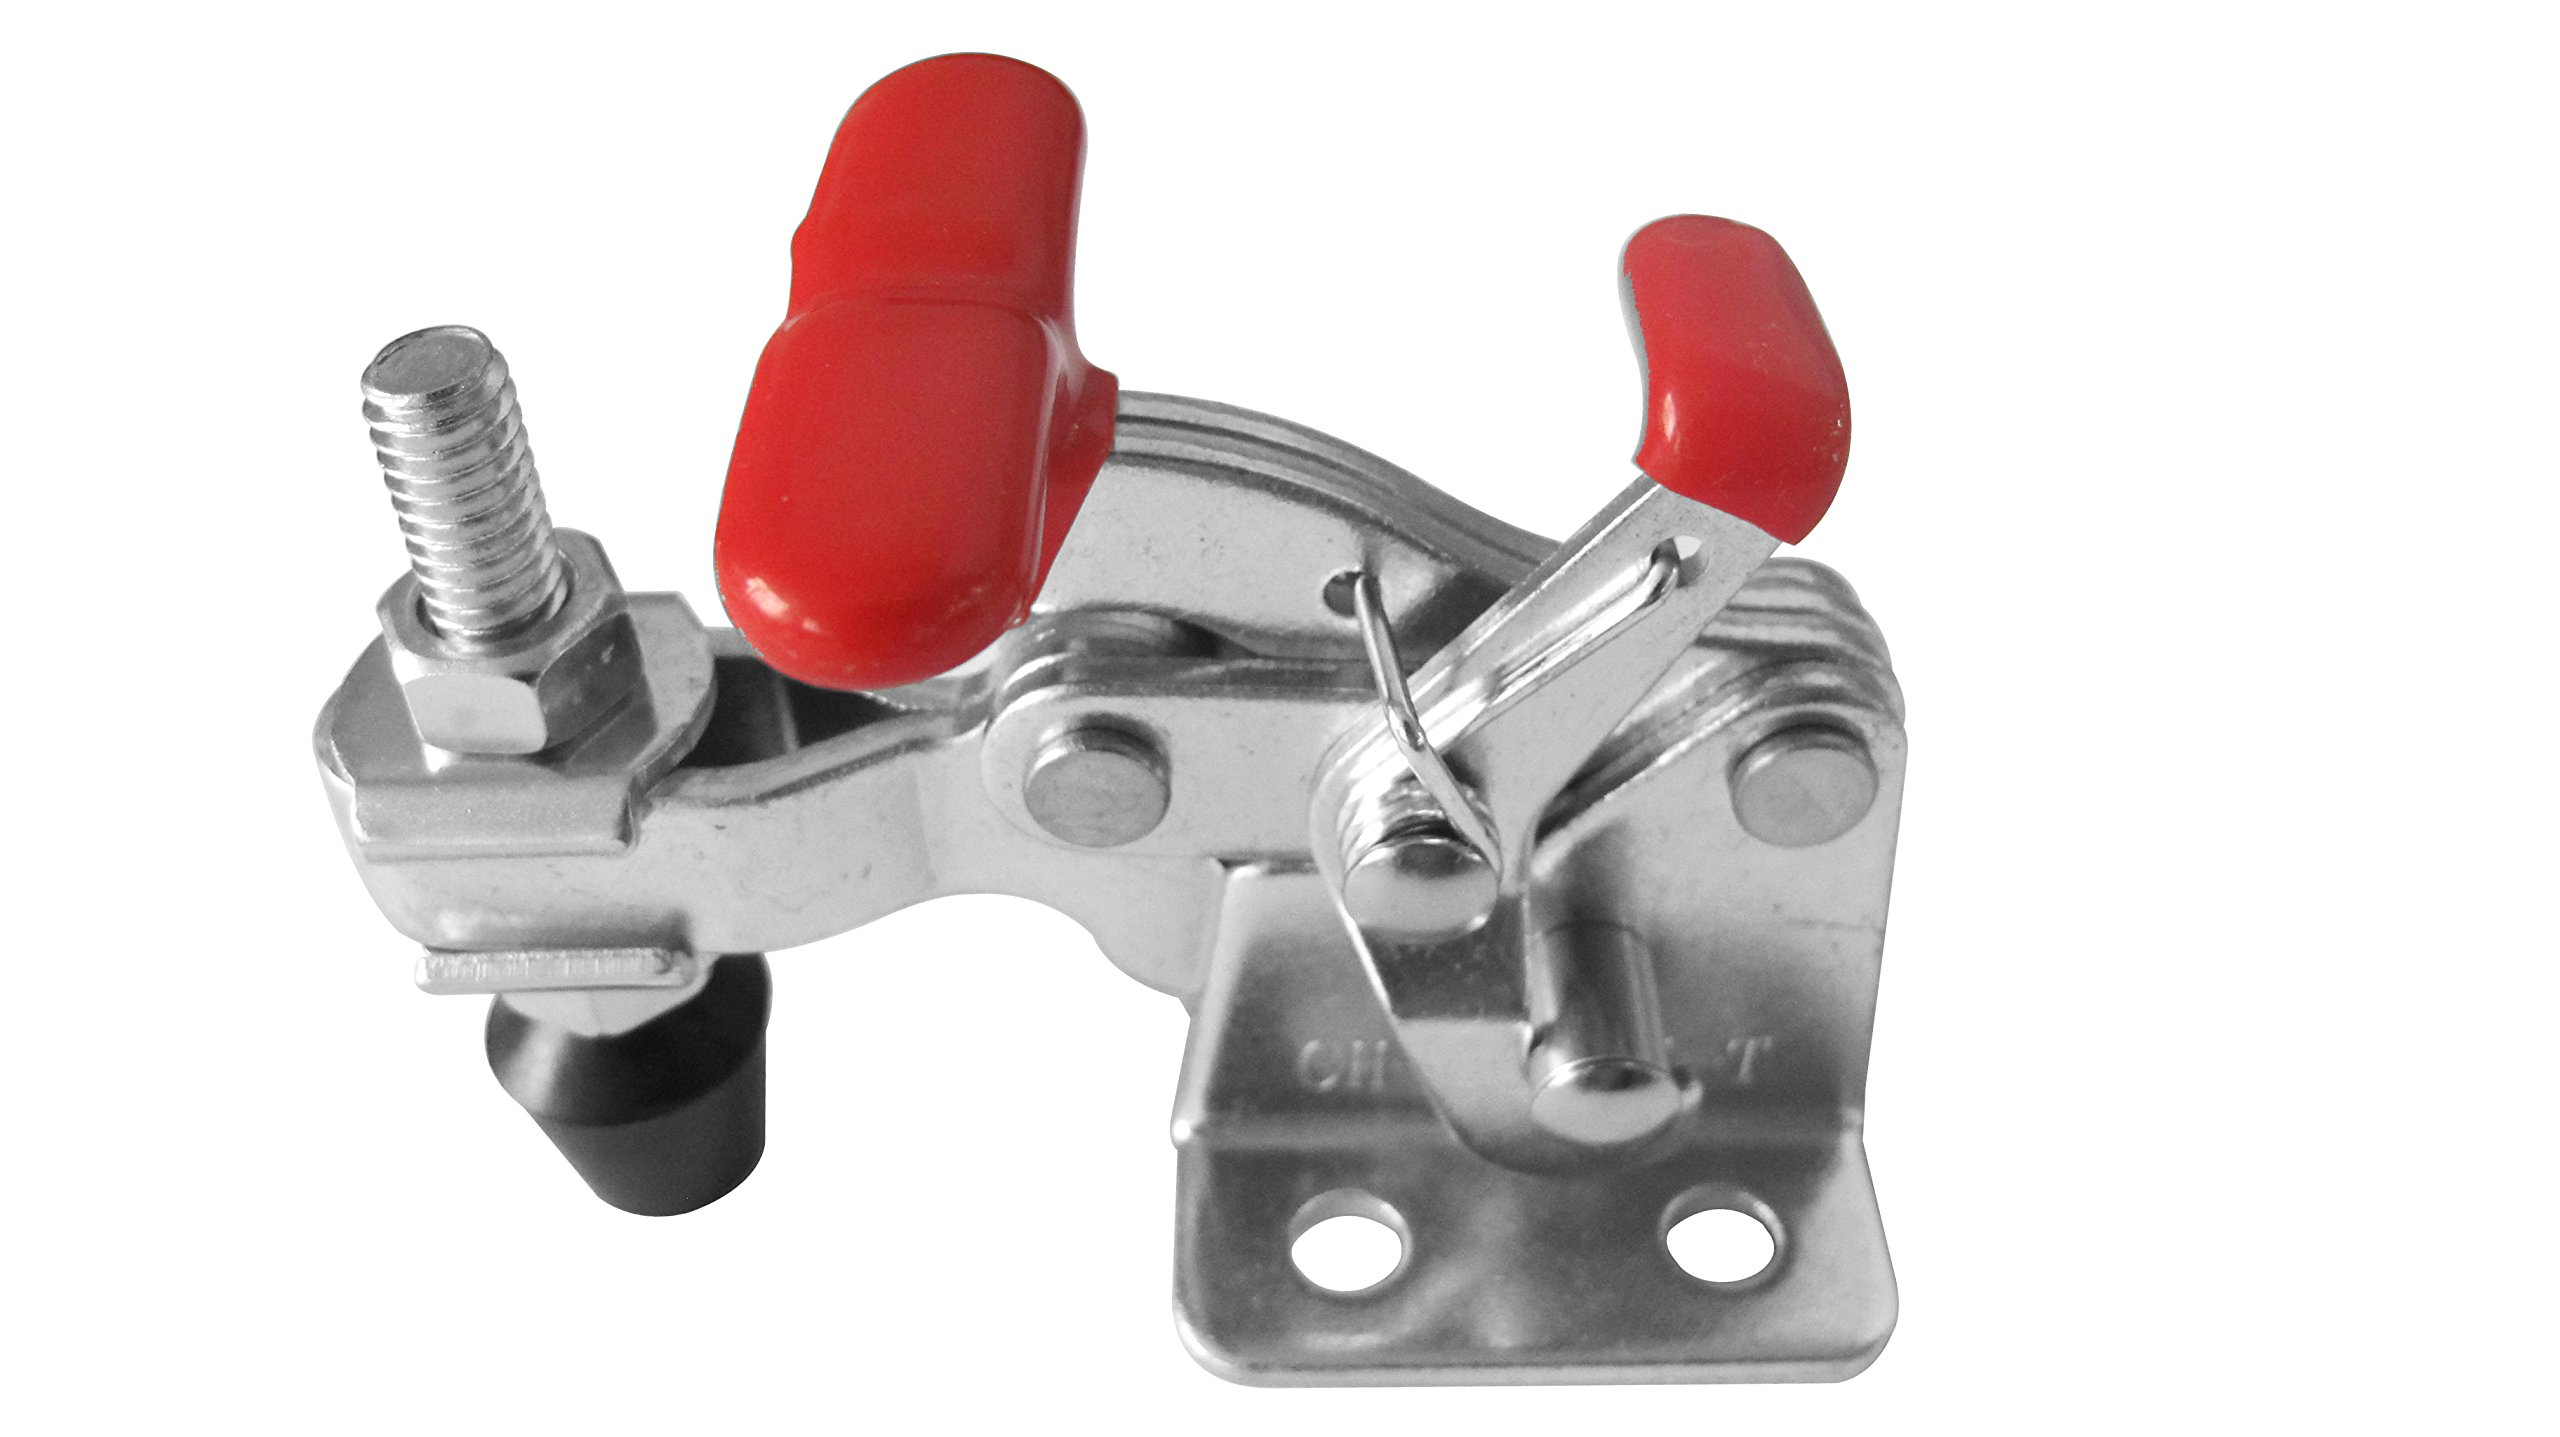 CLAMPTEK toggle clamps Vertical Handle Toggle Clamp CH-13007-T (DESTACO 307) by CLAMPTEK